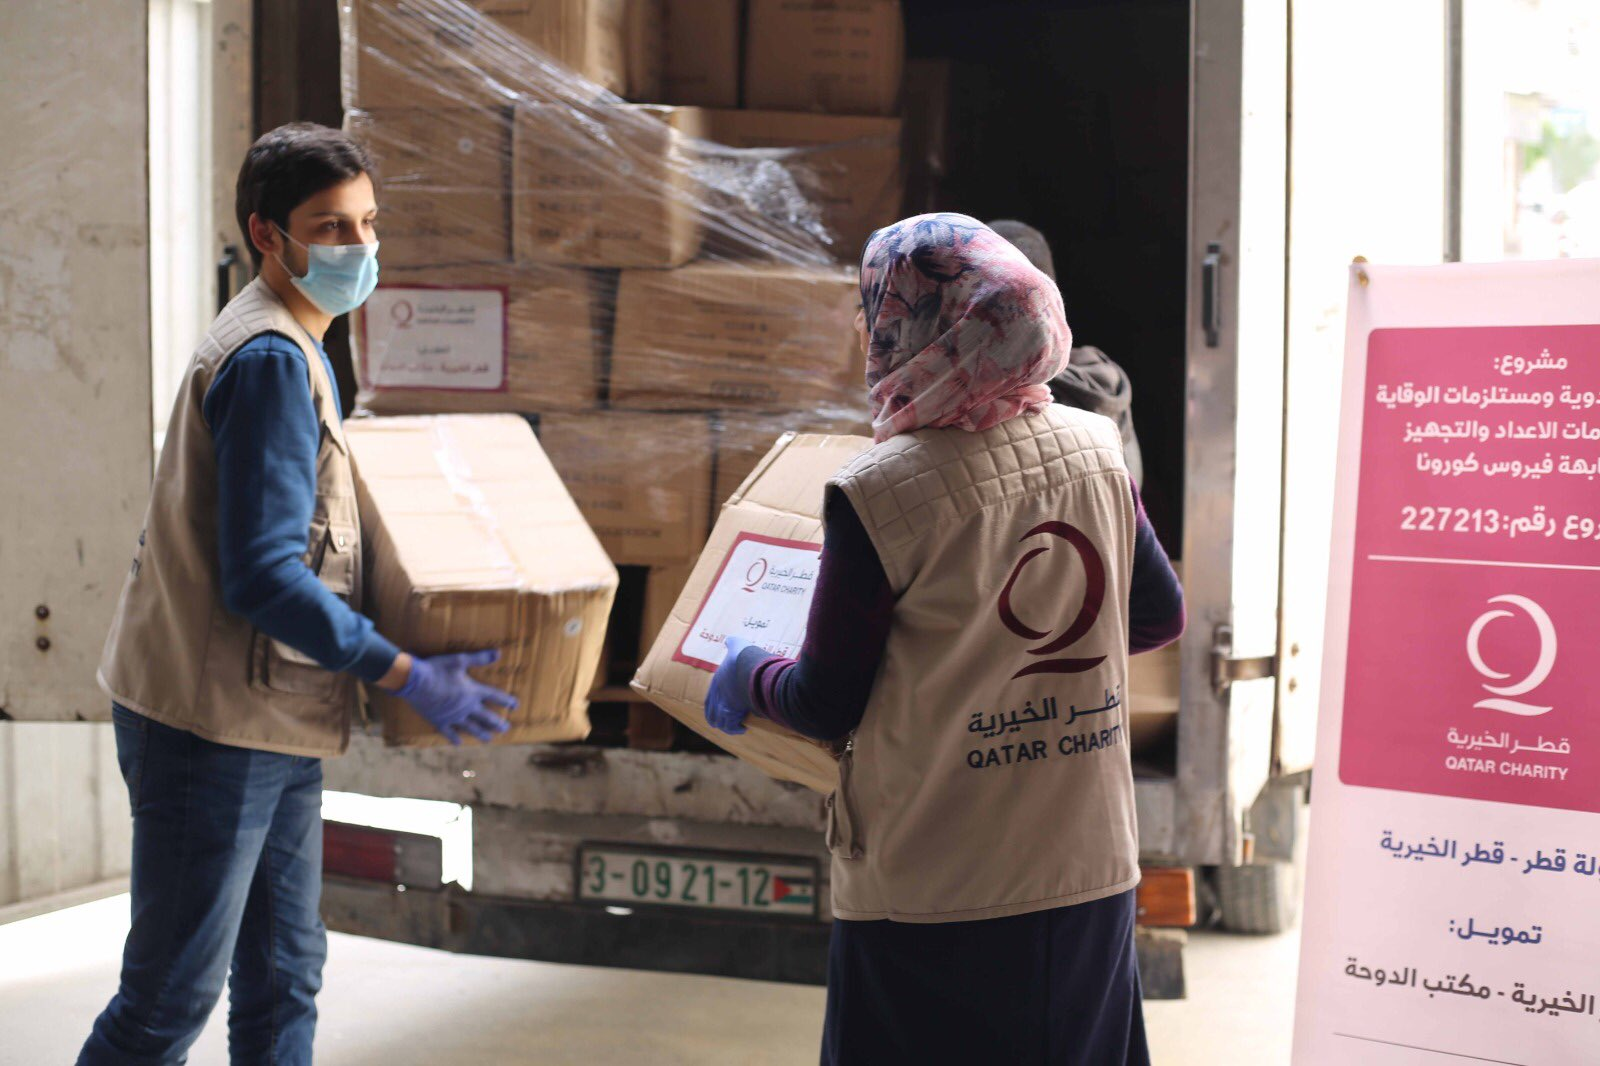 Qatar Charity continues to distribute food and preventive items worldwide